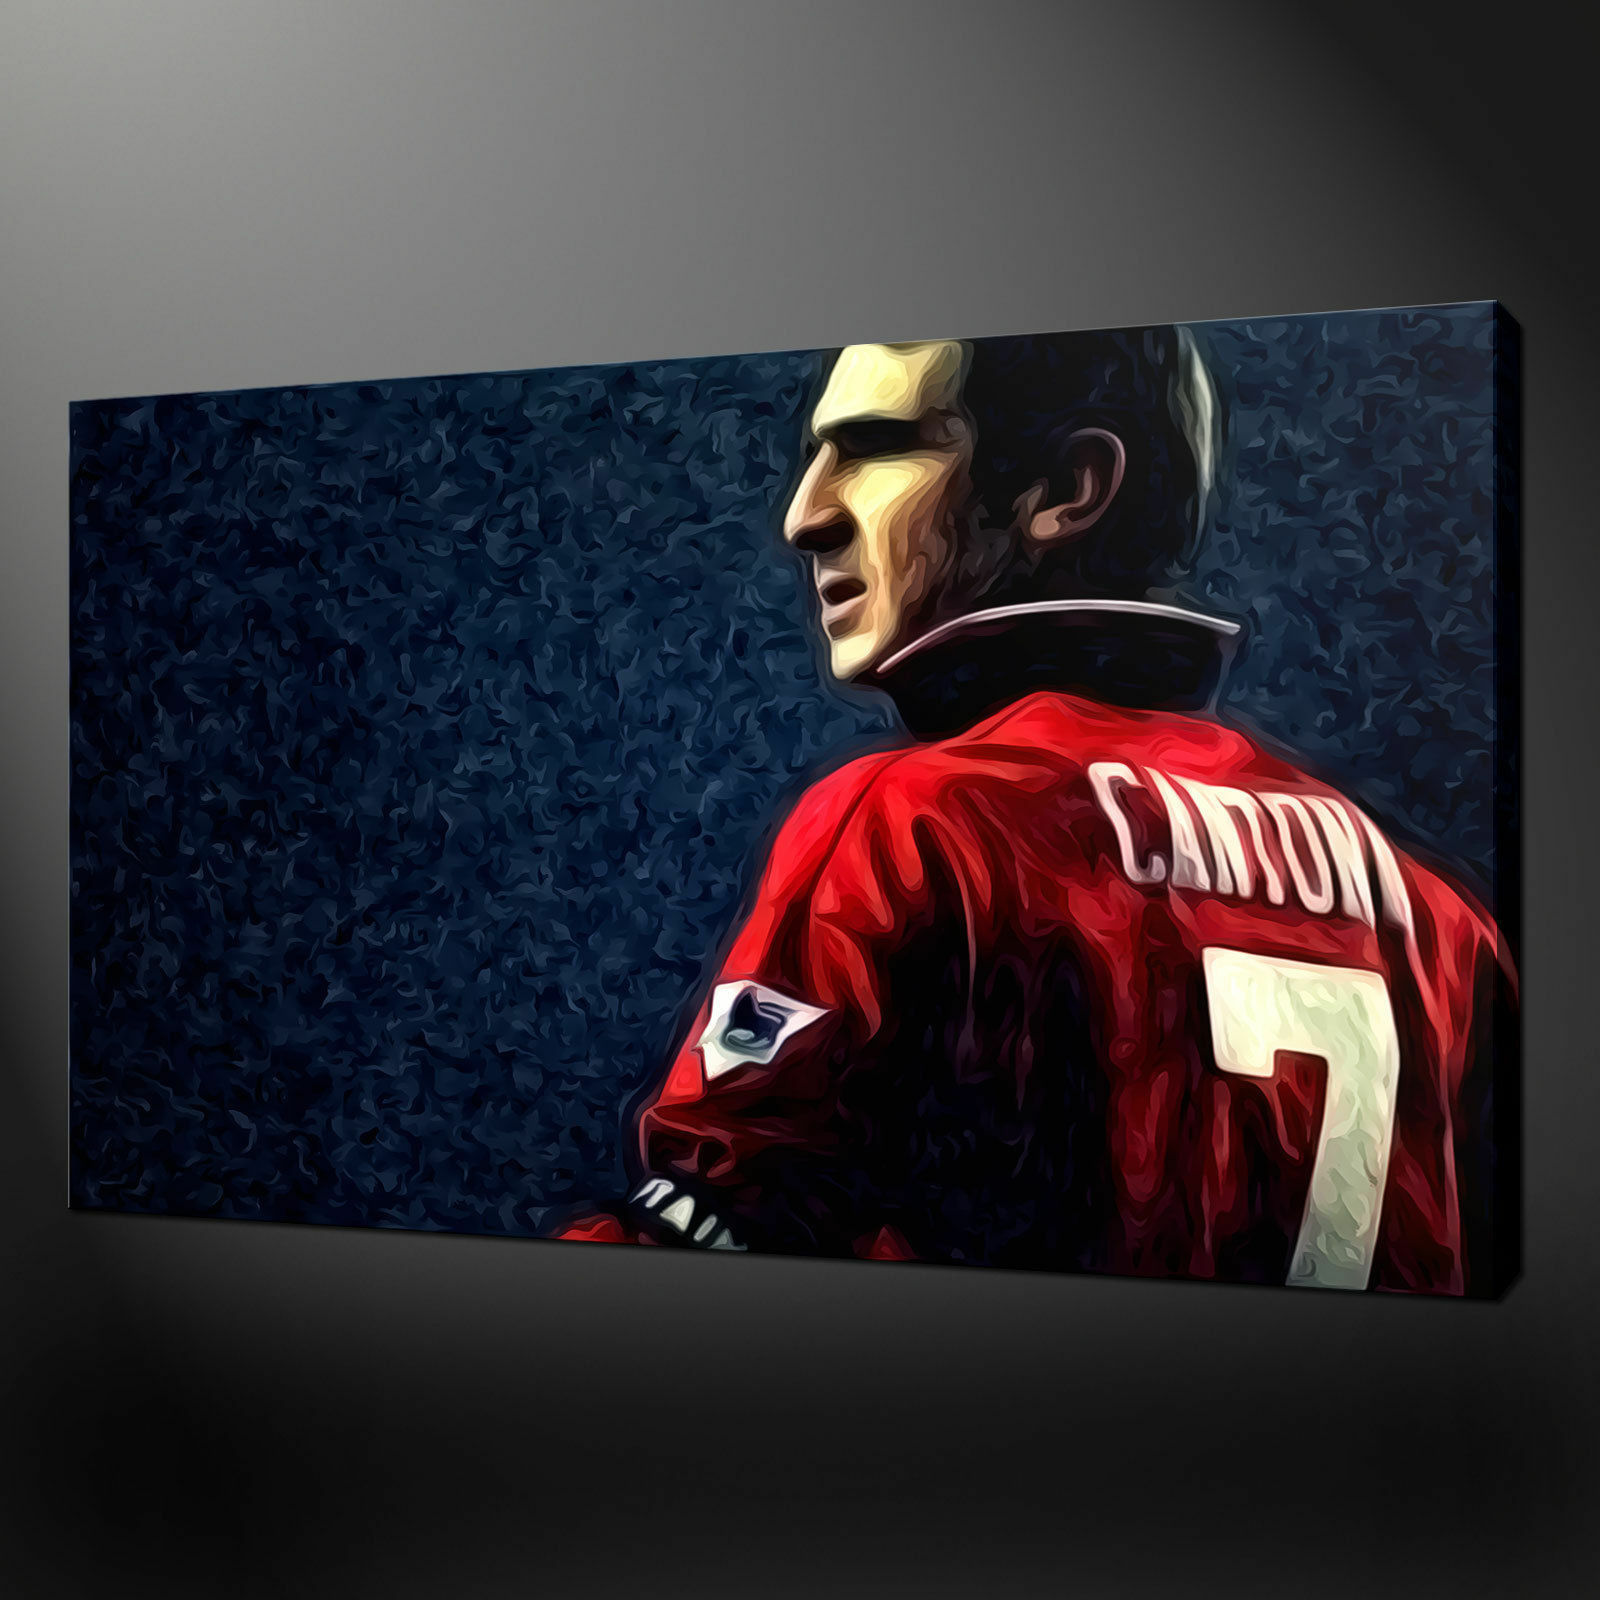 ERIC CANTONA CANVAS PRINT PICTURE WALL ART FREE UK DELIVERY VARIETY OF GrößeS